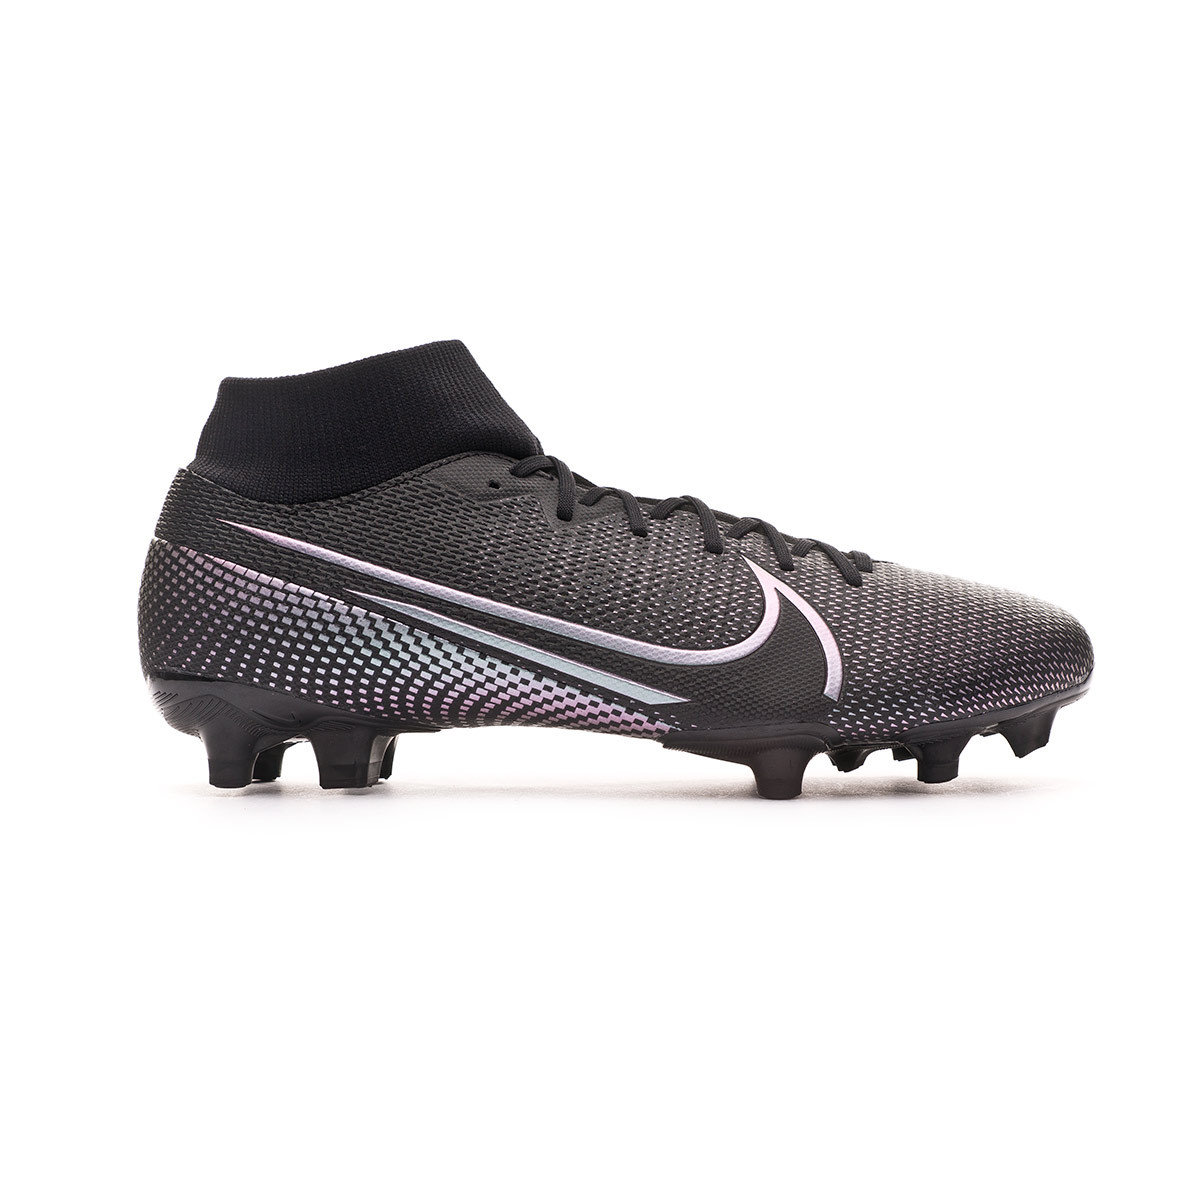 Chaussure de foot Nike Mercurial Superfly VII Academy FGMG